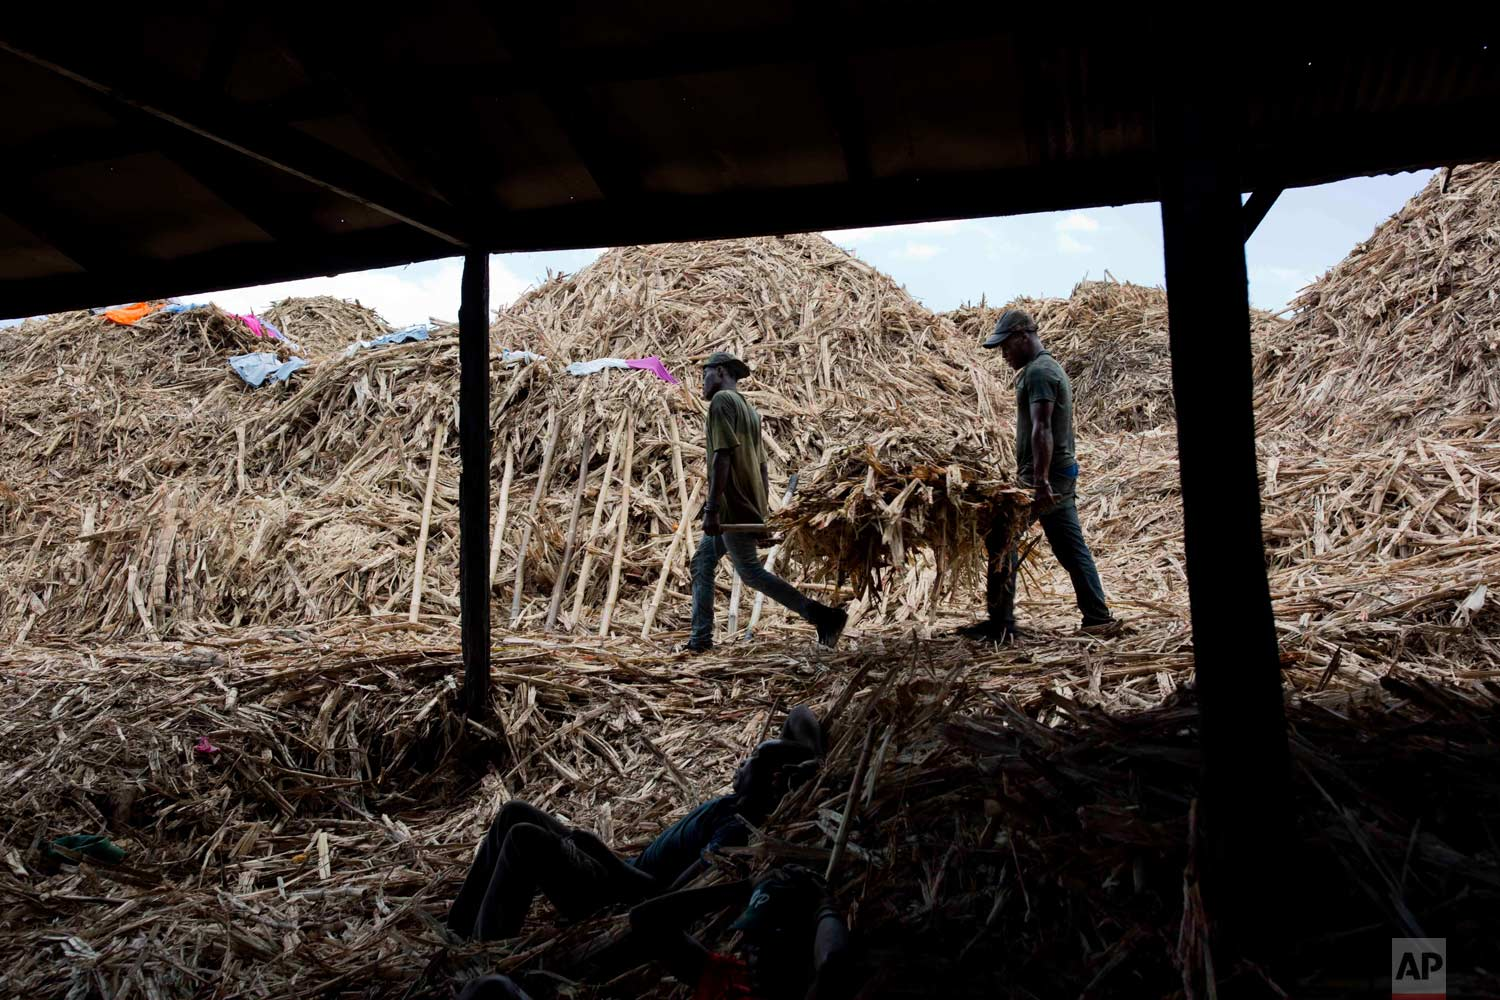 In this June 19, 2017 photo, Jean Rodelin Phillipe, 29, left, carries bagasse with Maxioner Laurent, 24, to be burned in a furnace at the Ti Jean distillery, which produces clairin, a sugar-based alcoholic drink, in Leogane, Haiti. Bagasse is the fiber left over after pressing the juice from the sugar cane, and is used to feed the fire that cooks clairin. (AP Photo/Dieu Nalio Chery)